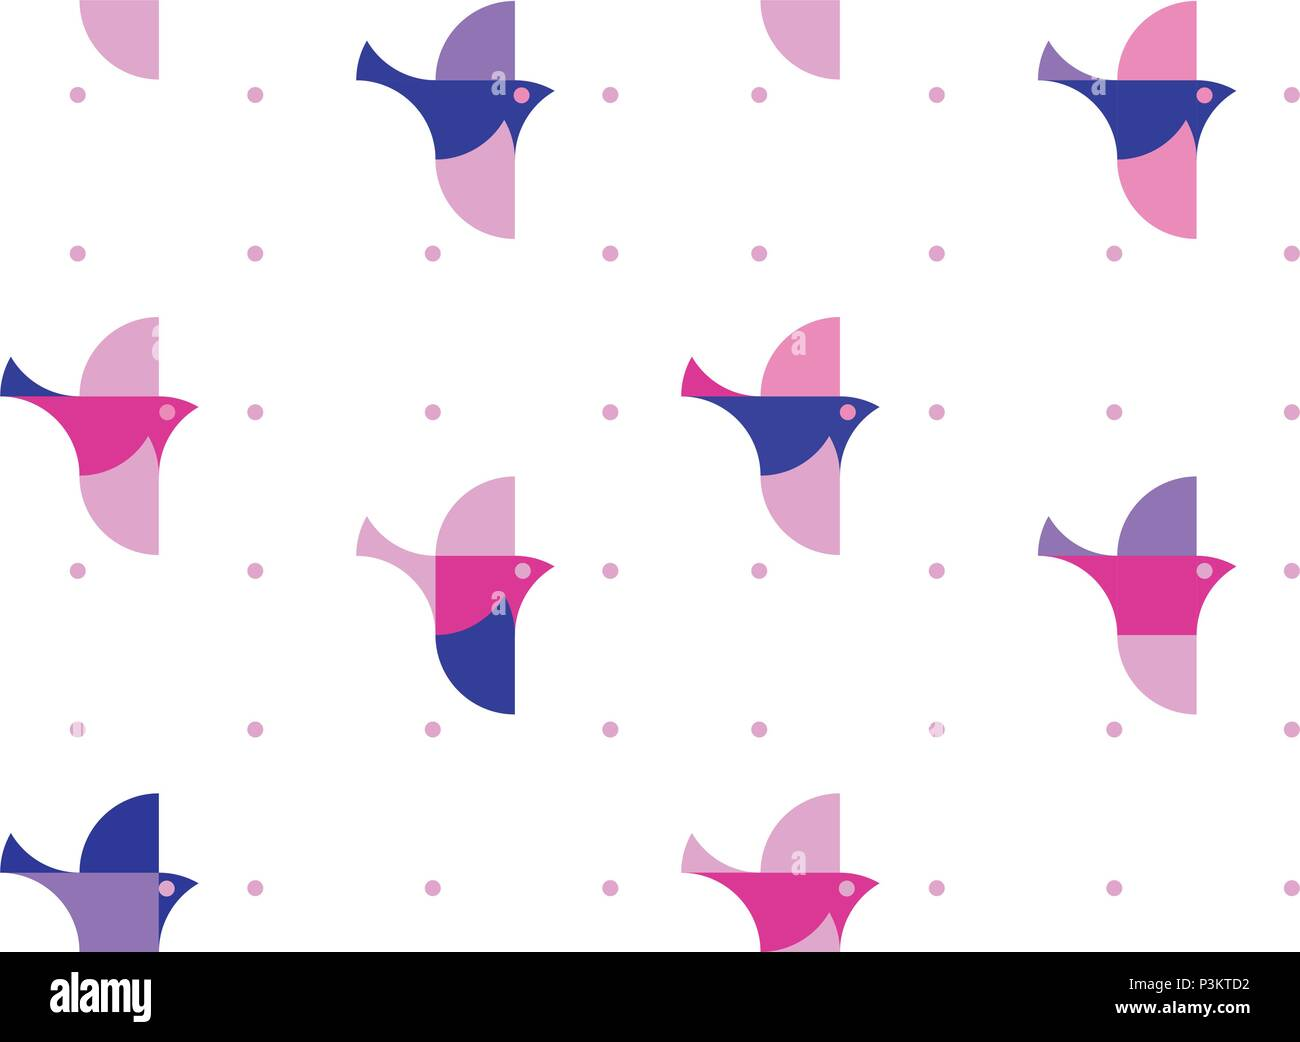 Nursery Childish Seamless Pattern Background With Flying Birds Decorativ Style Trendy Textile Wallpaper Wrapping Paper Kids Apparel Design Stock Vector Image Art Alamy